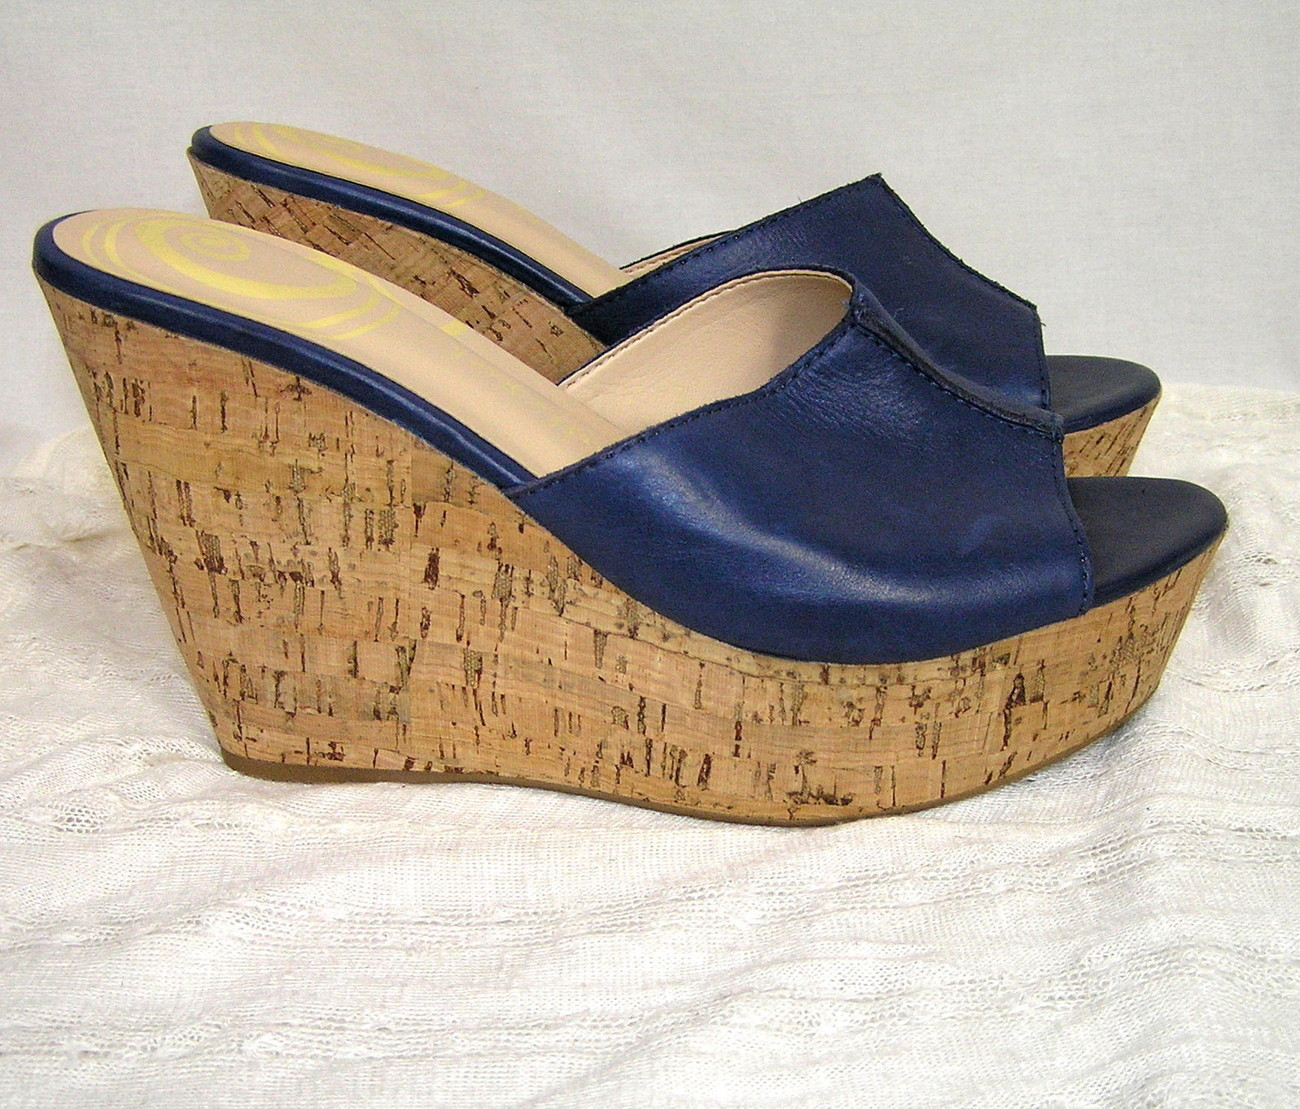 Primary image for NWOB Gabriella Rocha Quandra Navy Blue Leather Sandals Cork Wedge Platform Heel